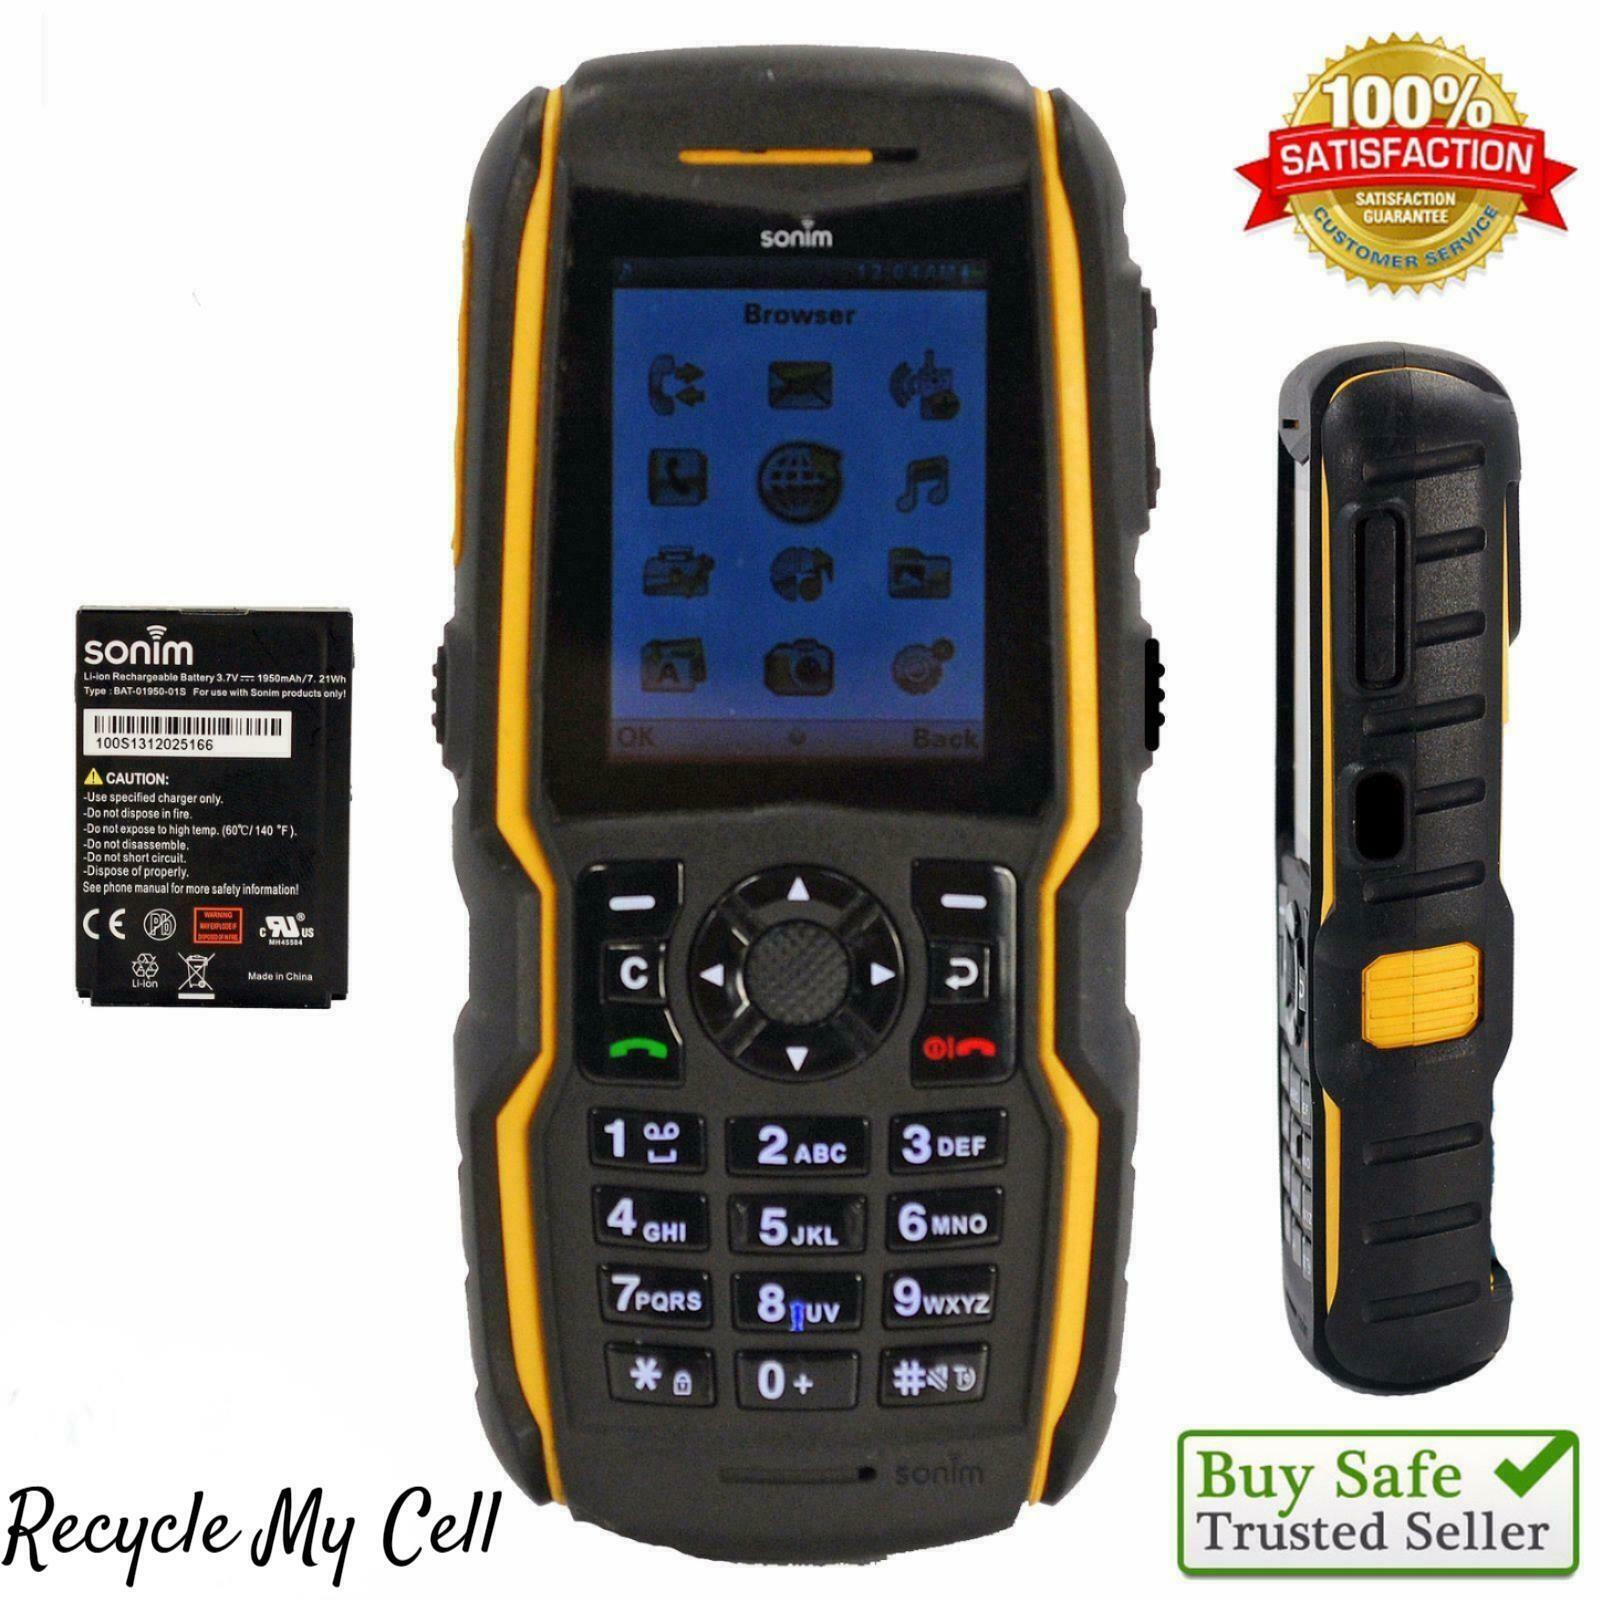 Sonim XP5560 Bolt (AT&T) 3G Rugged Certified Military Phone GSM - PHONE ONLY